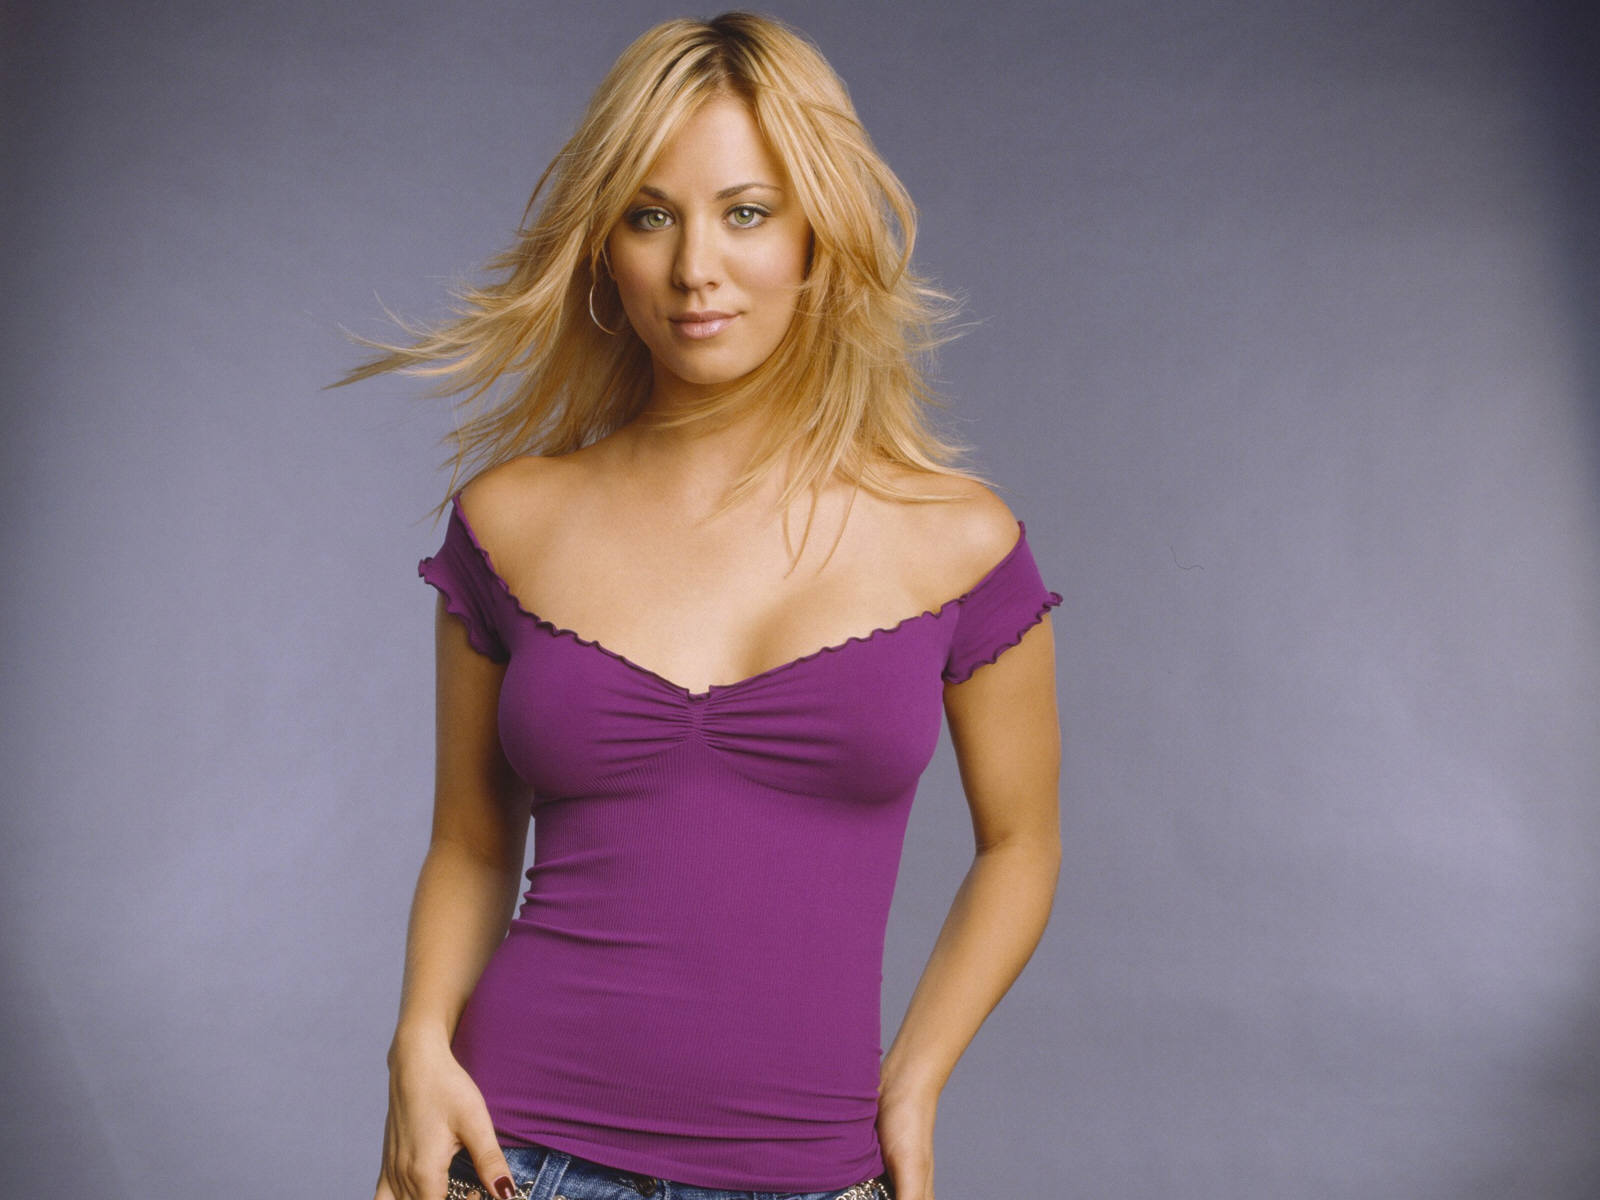 prison break actress kaley cuoco wallpapers | wallpapers hd